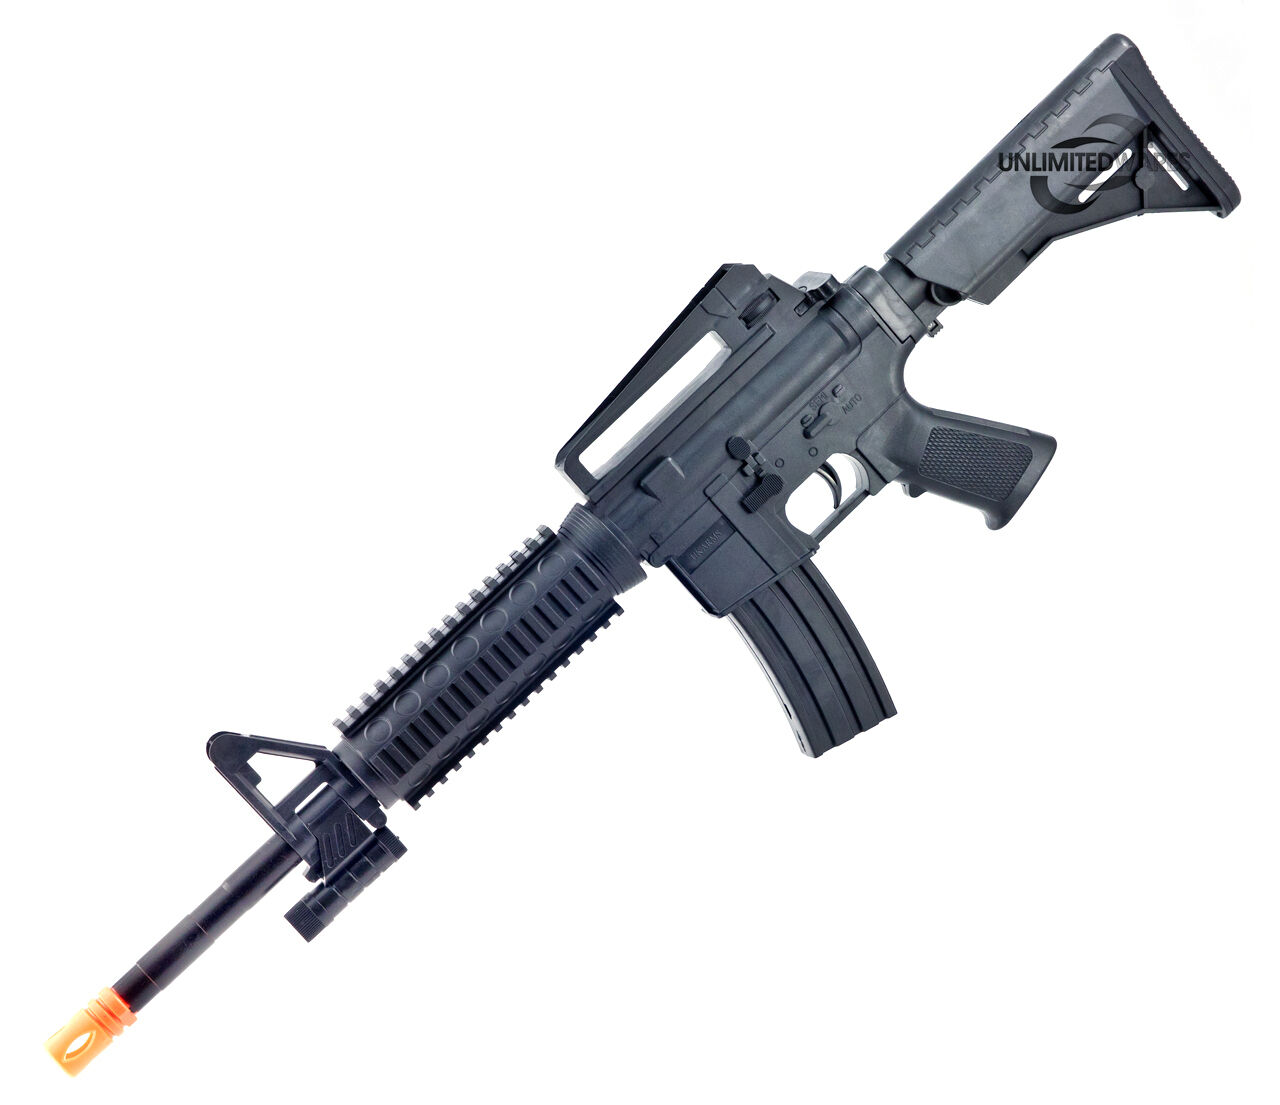 NEW M4 A1 M16 TACTICAL ASSAULT SPRING AIRSOFT RIFLE PELLET ... M16 Airsoft